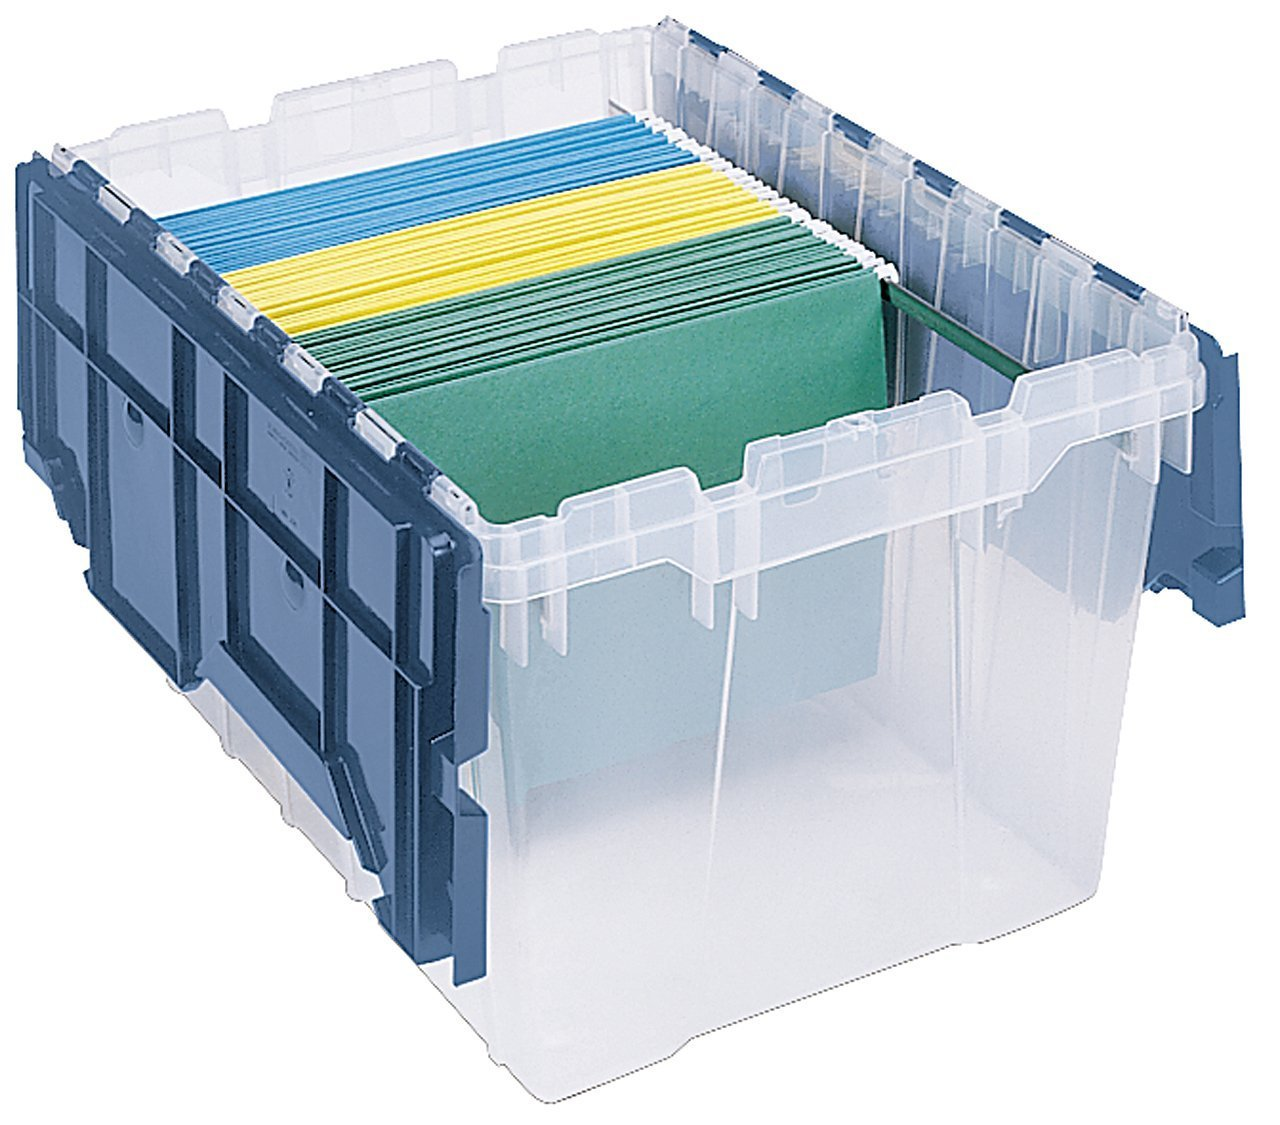 B000Z5BKR2 Akro-Mils 66486 FILEB 12-Gallon Plastic Storage Hanging File Box with Attached Lid, 21-1/2-Inch by 15-Inch by 12-1/2-Inch, Semi-Clear 61DdWdvxrCL._SL1200_